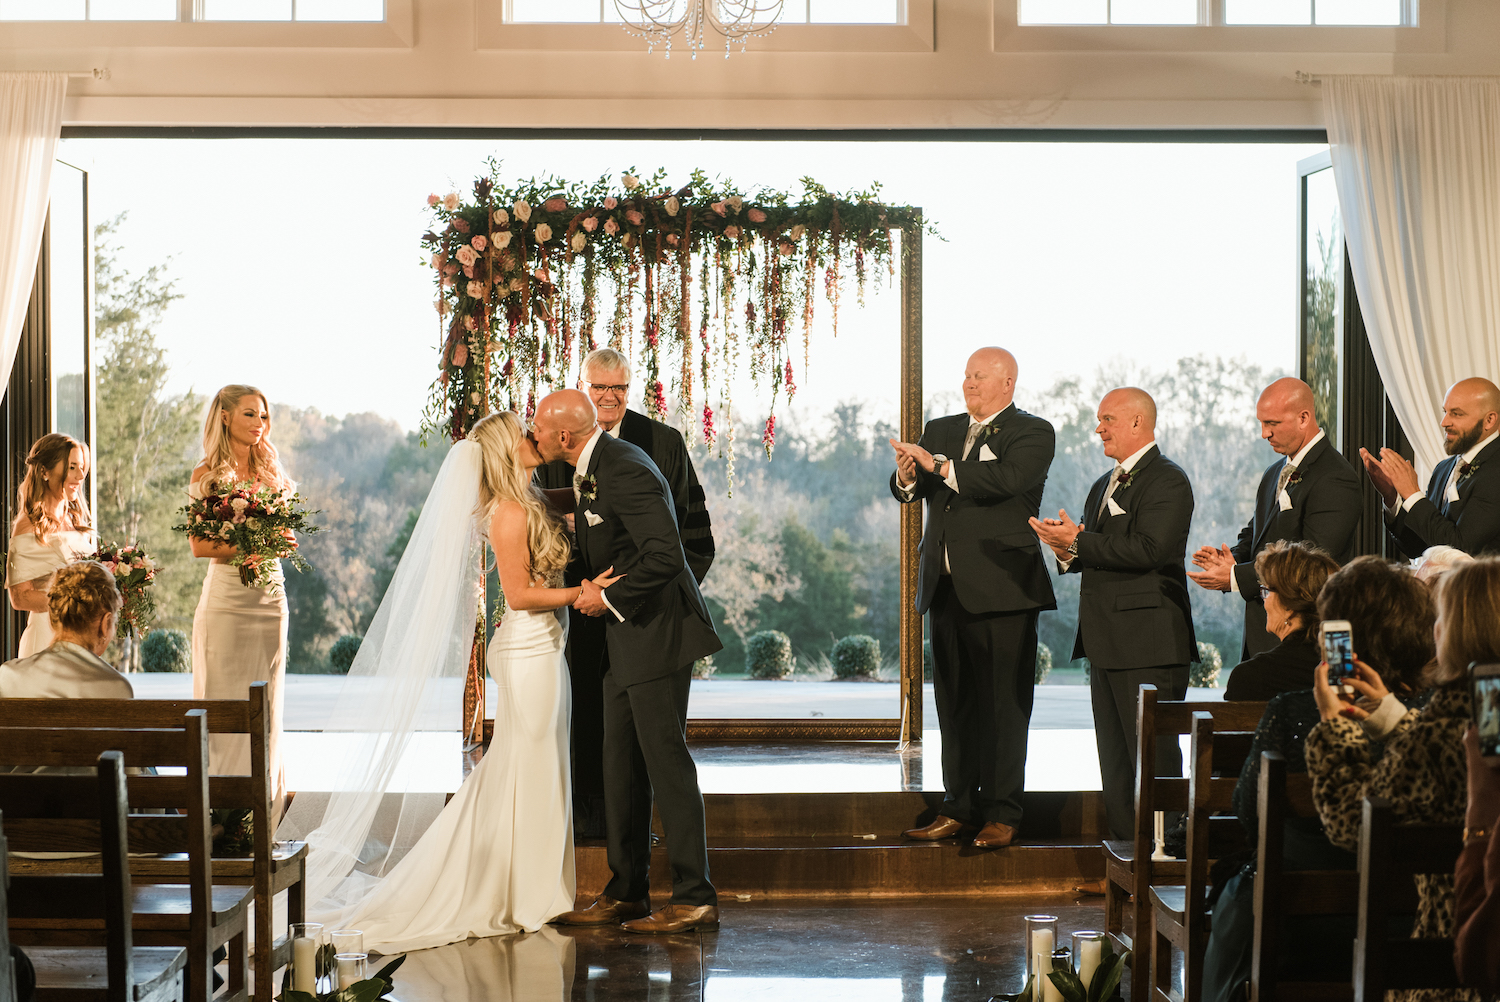 Shelby Rae Photographs Wedding Photography featured on Nashville Bride Guide